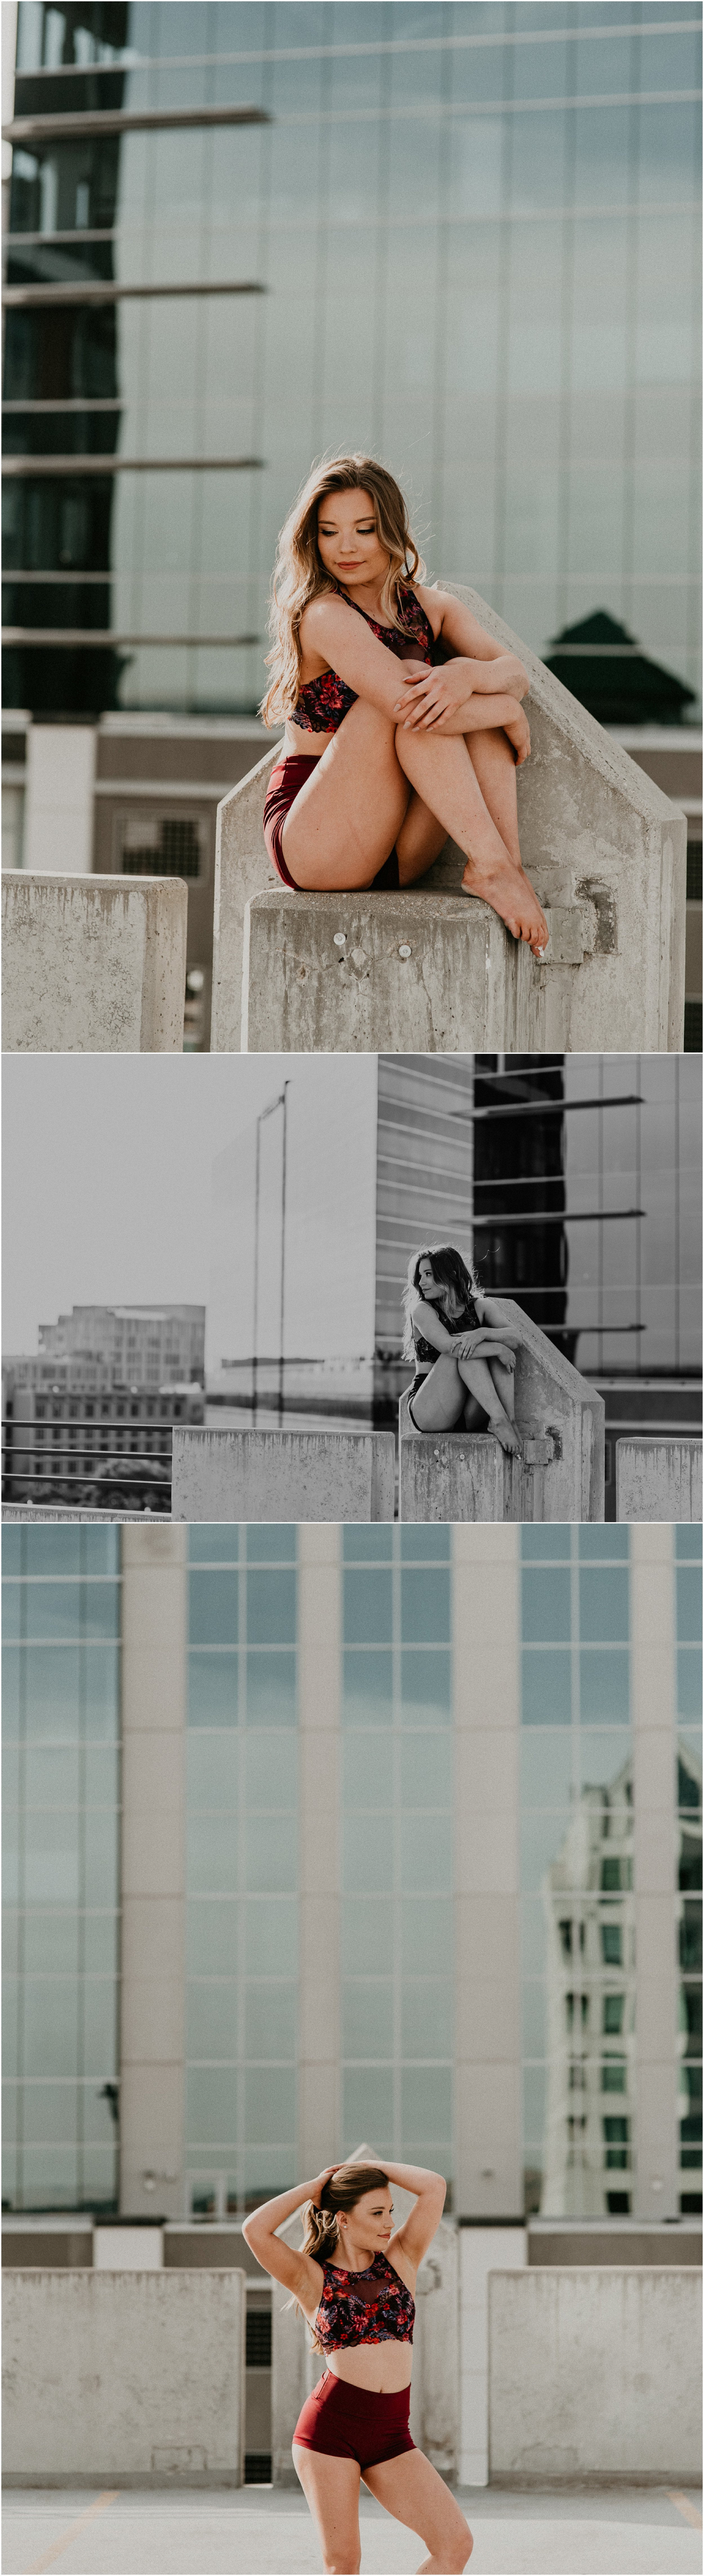 Makayla Madden Photography Boise Senior Photographer Senior Pictures Downtown Boise Mountain View Dancing Dance Inspiration Rooftop